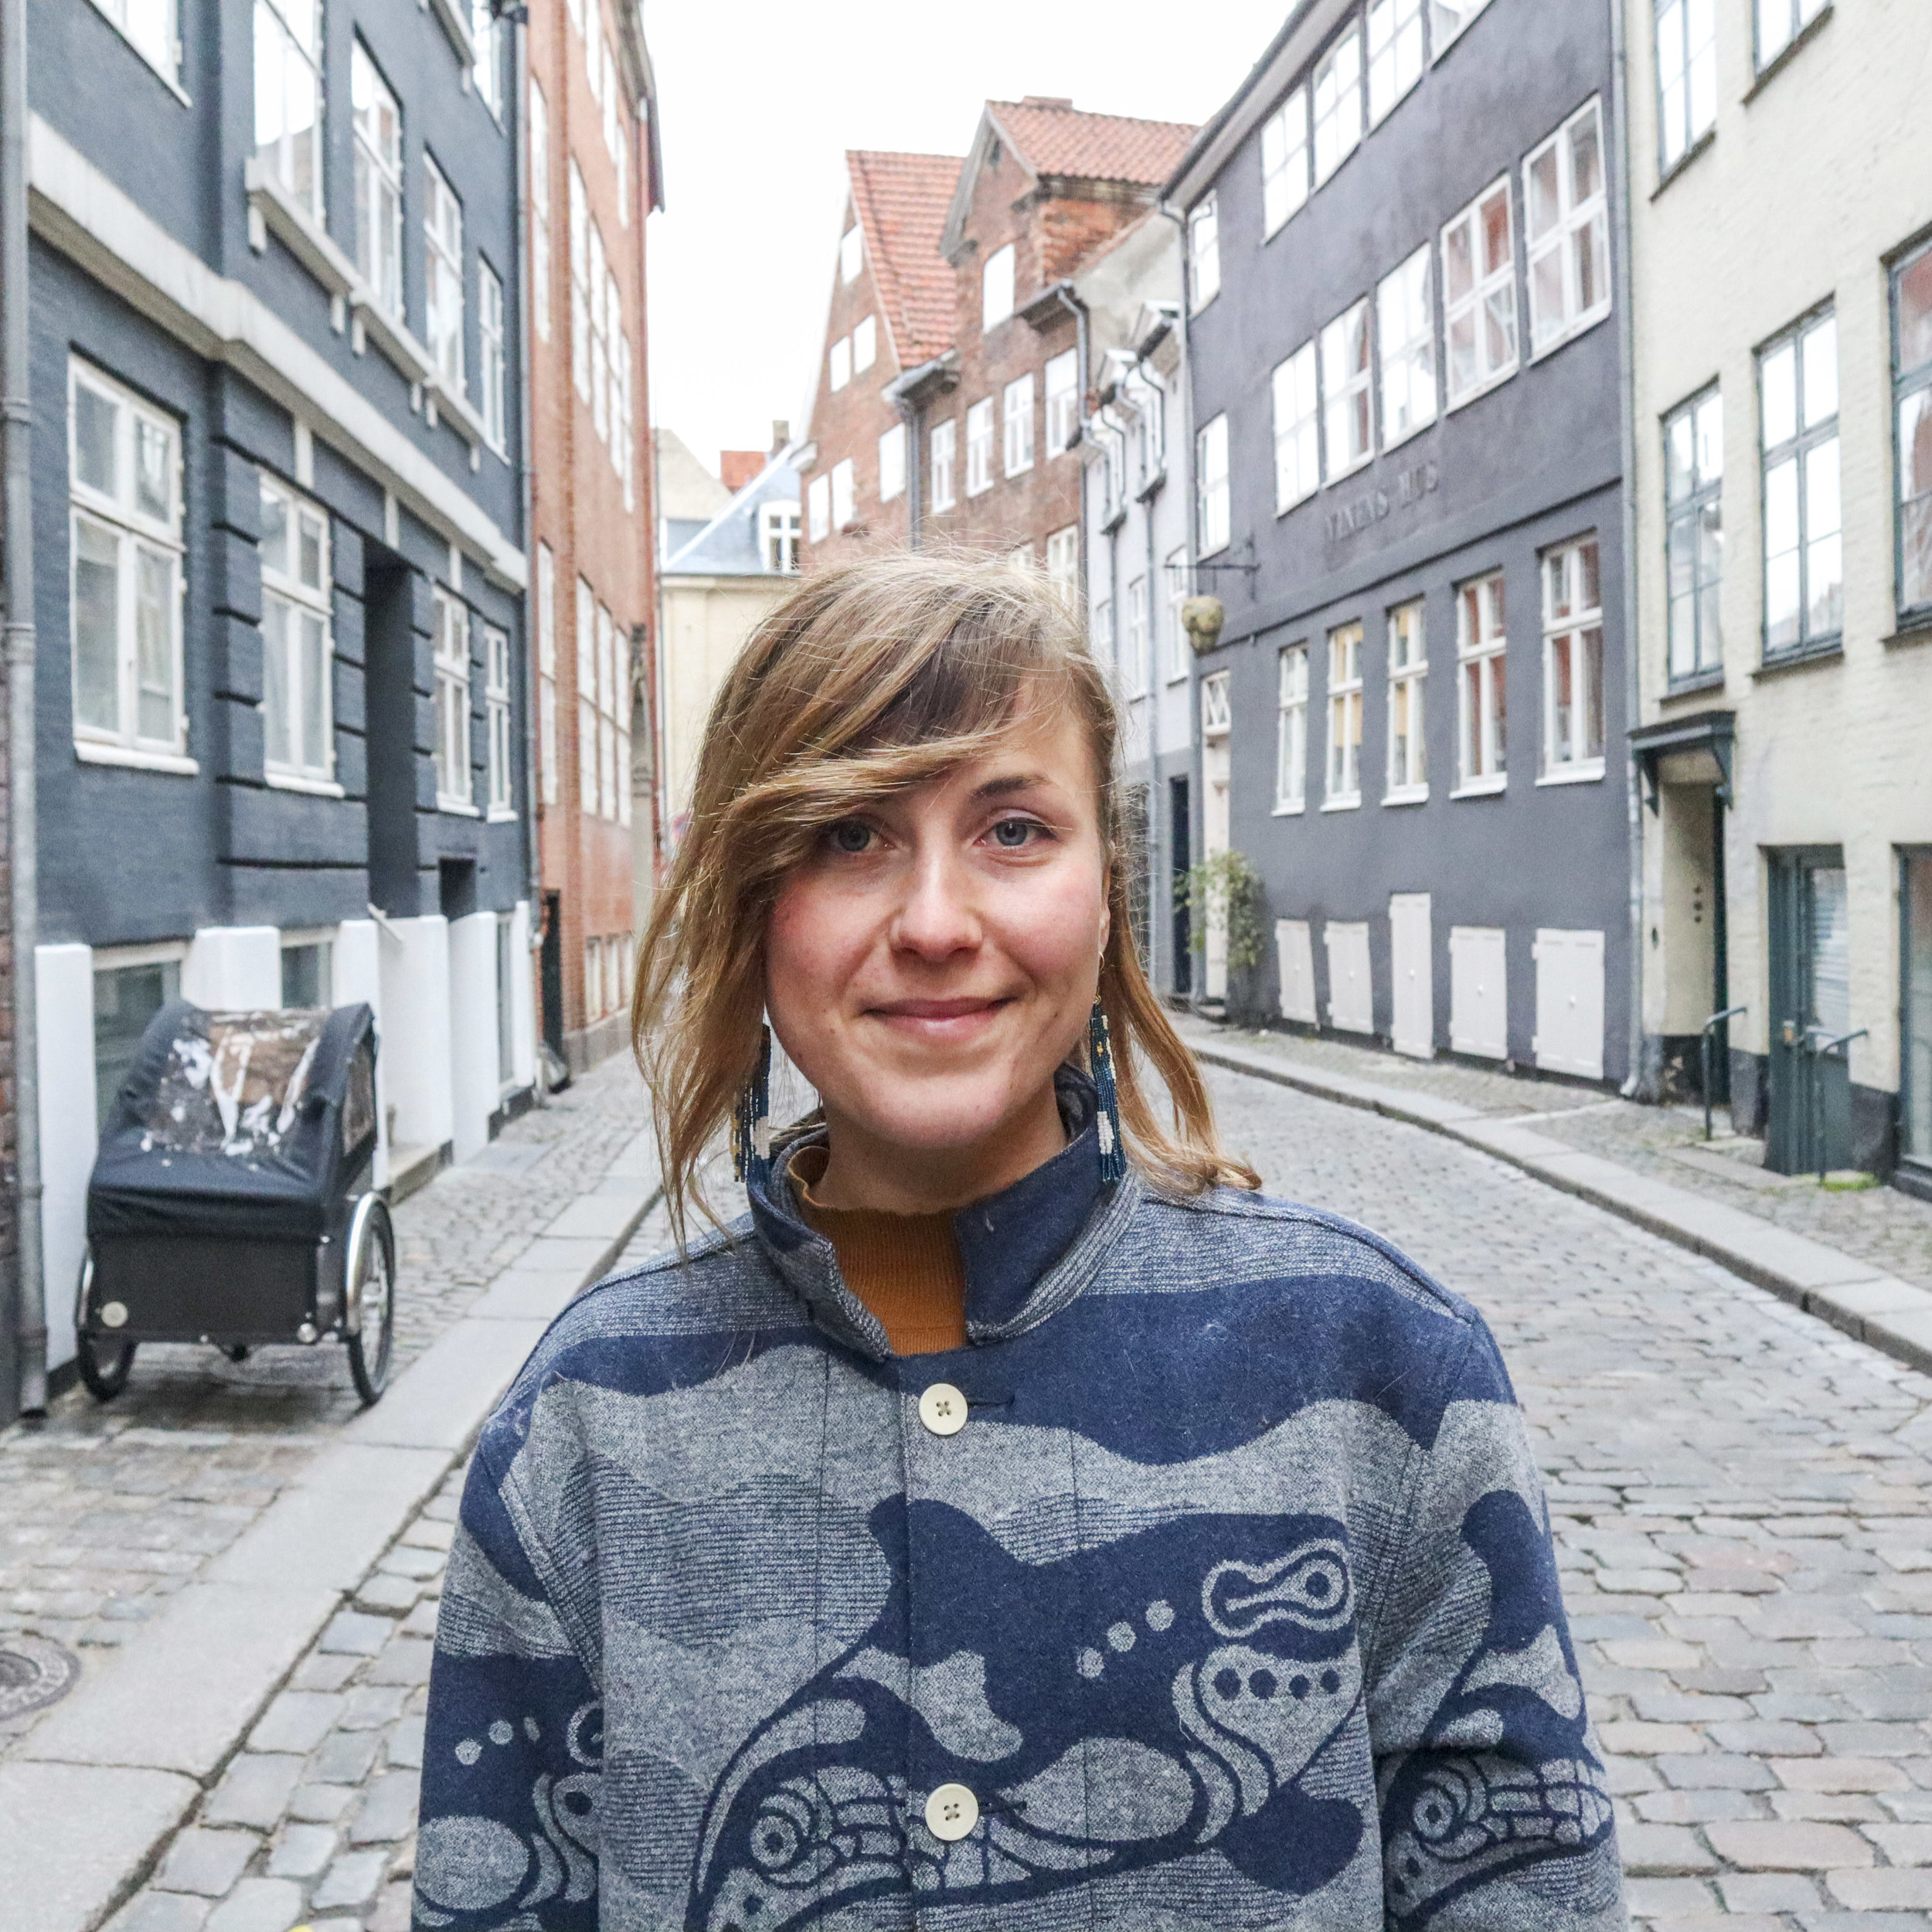 Erin Hauer Landscape architecture Copenhagen University - Erin is researching biocultural diversity of urban waterways and will use Maptionnaire for a local case study of citizen's perspectives on a stream restoration project.